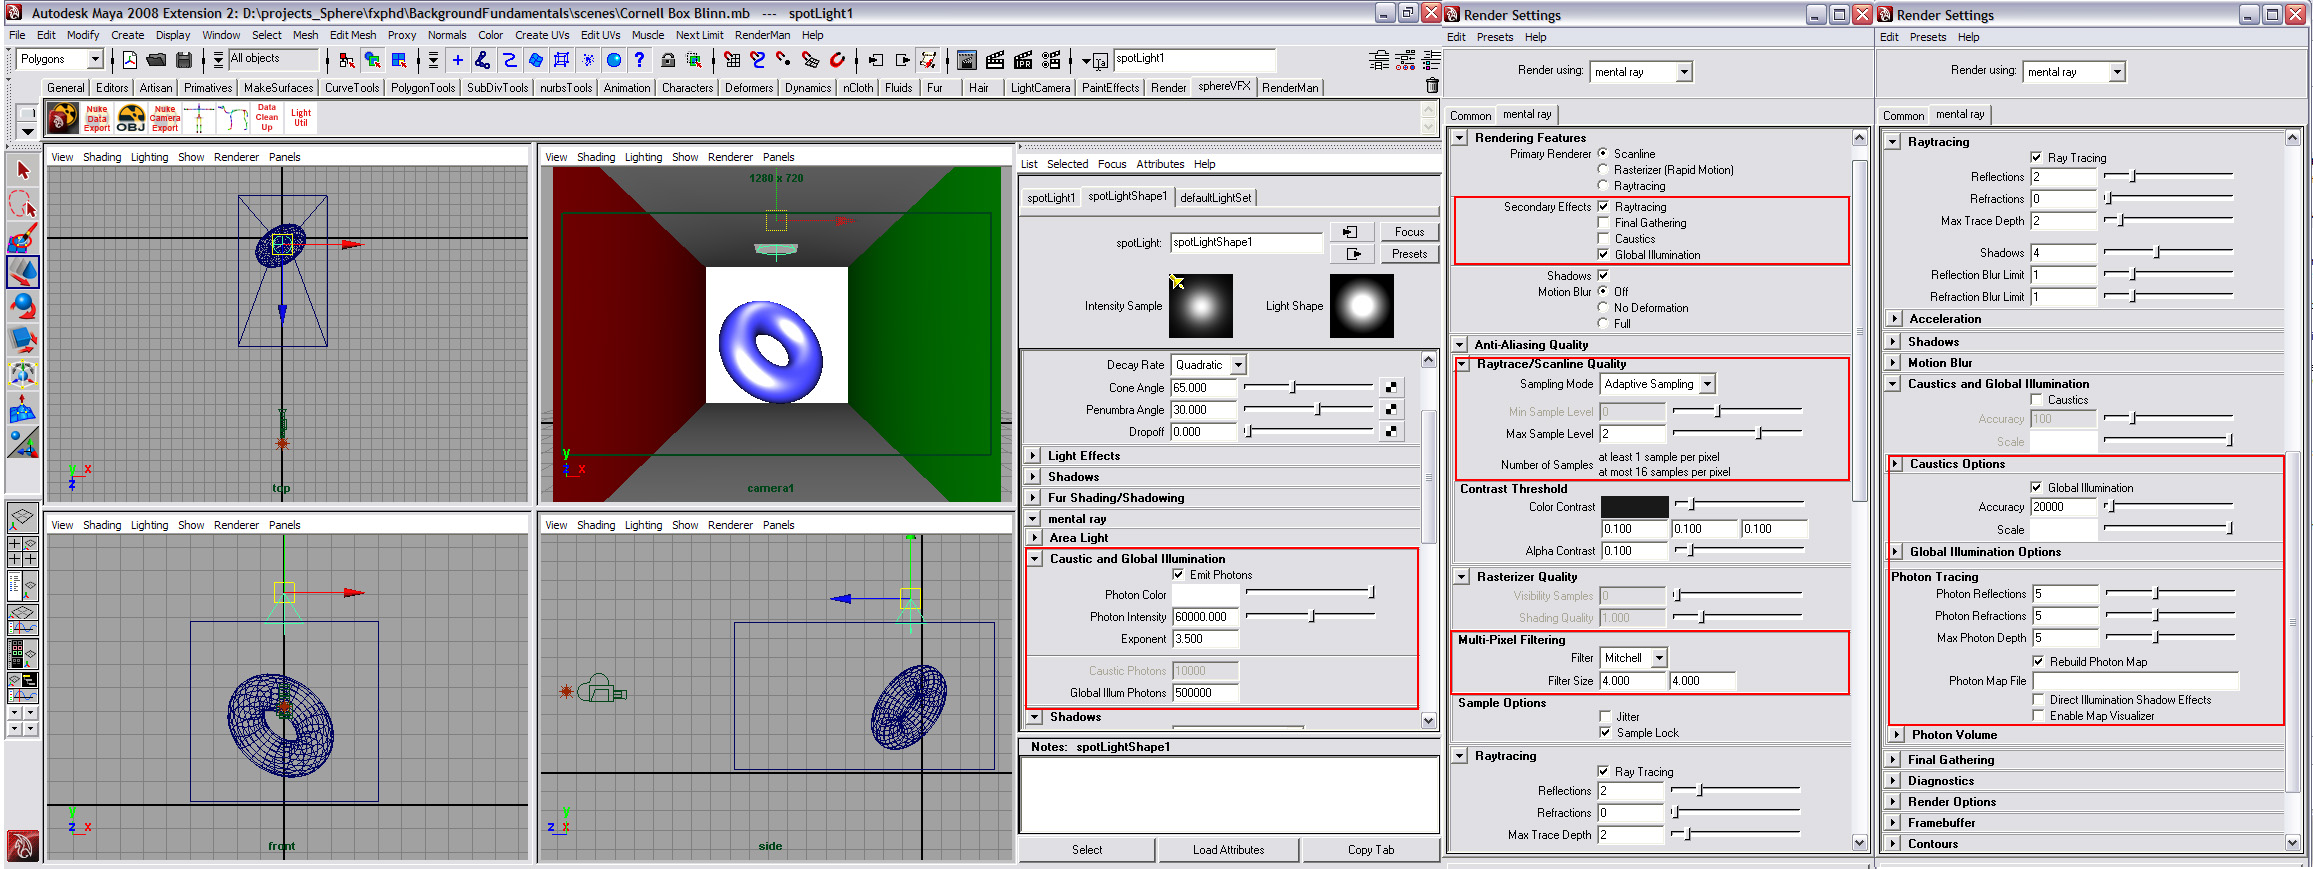 Subscribe, 3ds max, autodesk 3ds max (software), tutorial, channel, render, final, my, finalrender, rendering